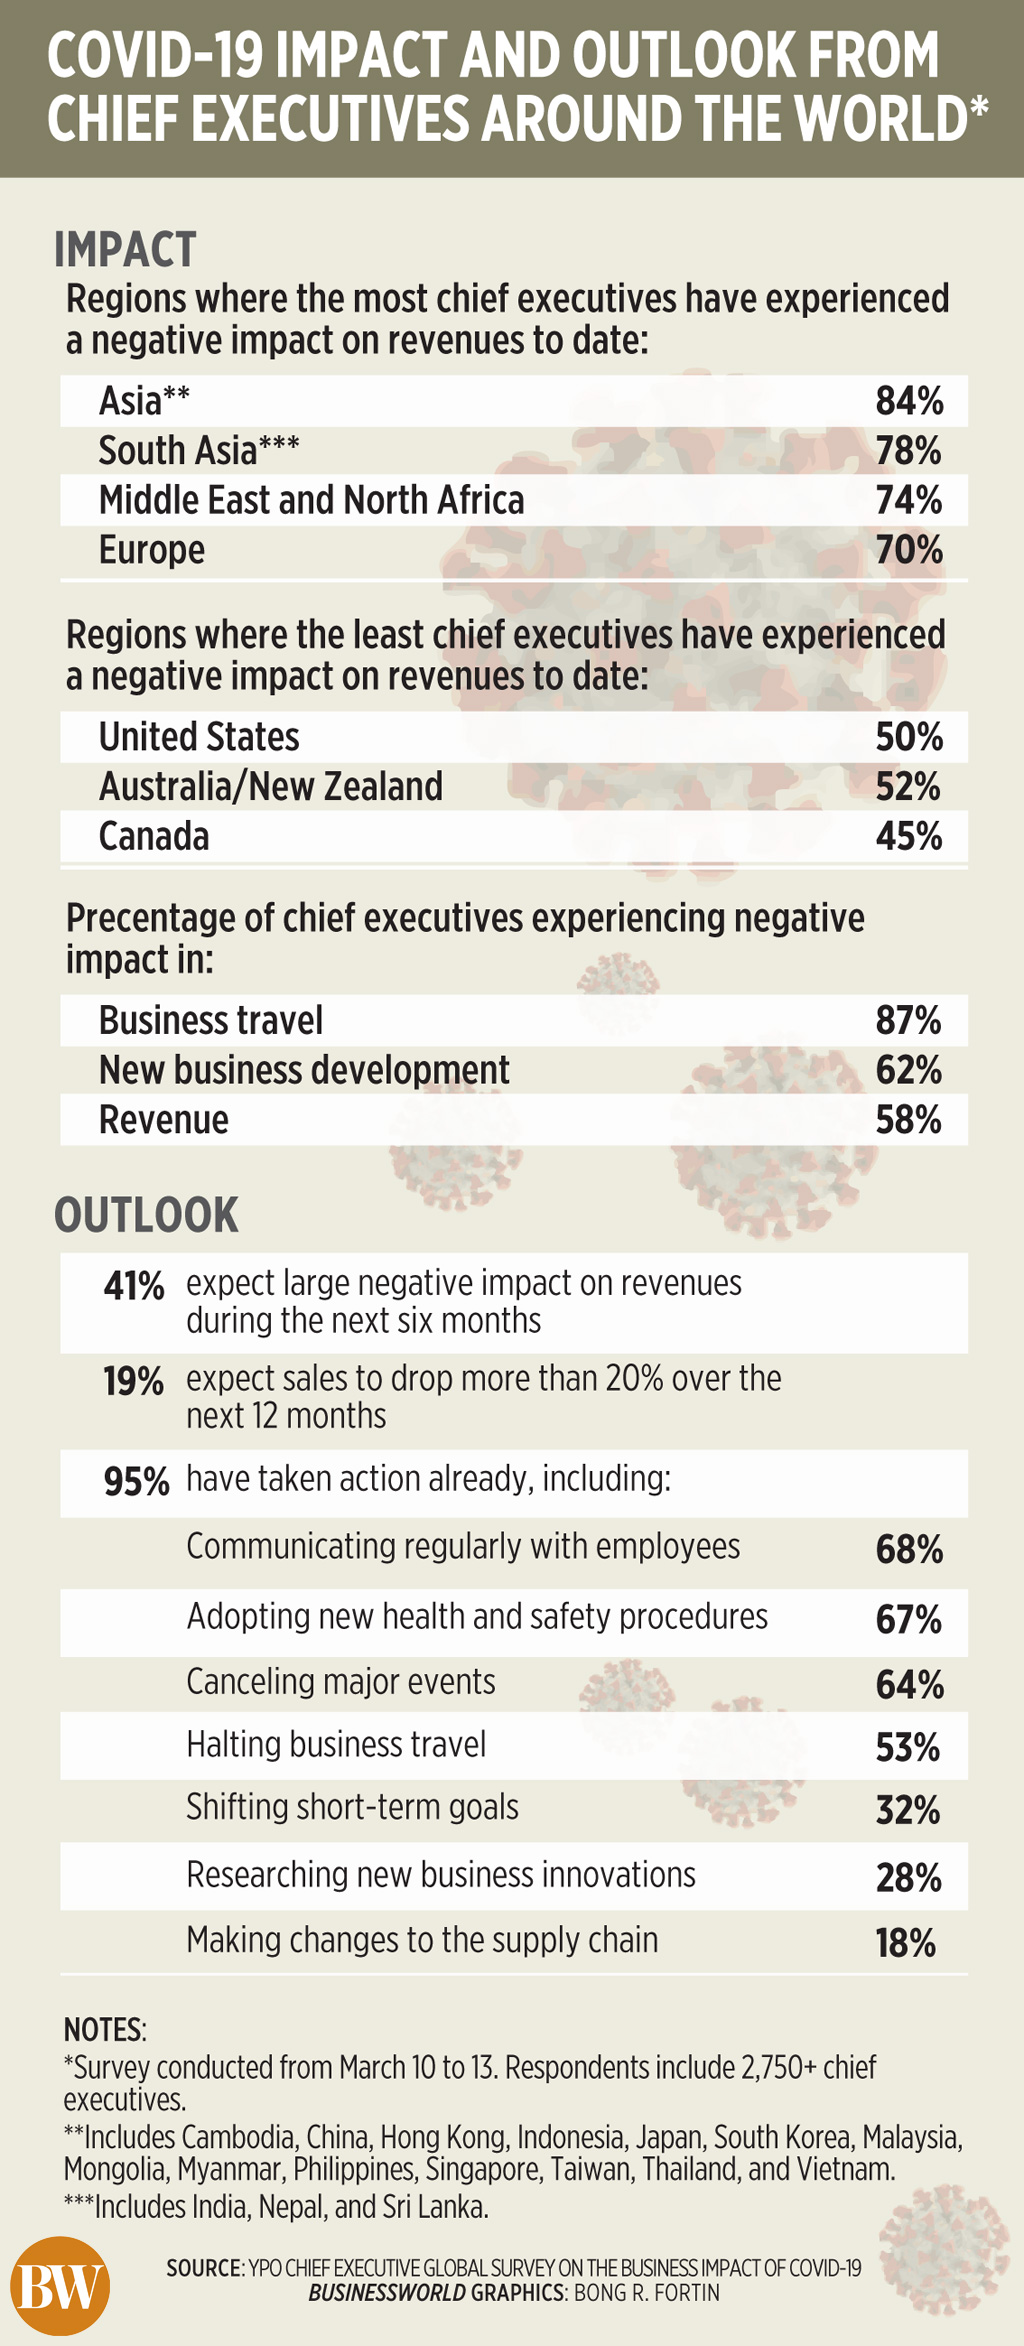 COVID-19 impact and outlook from chief executives around the world